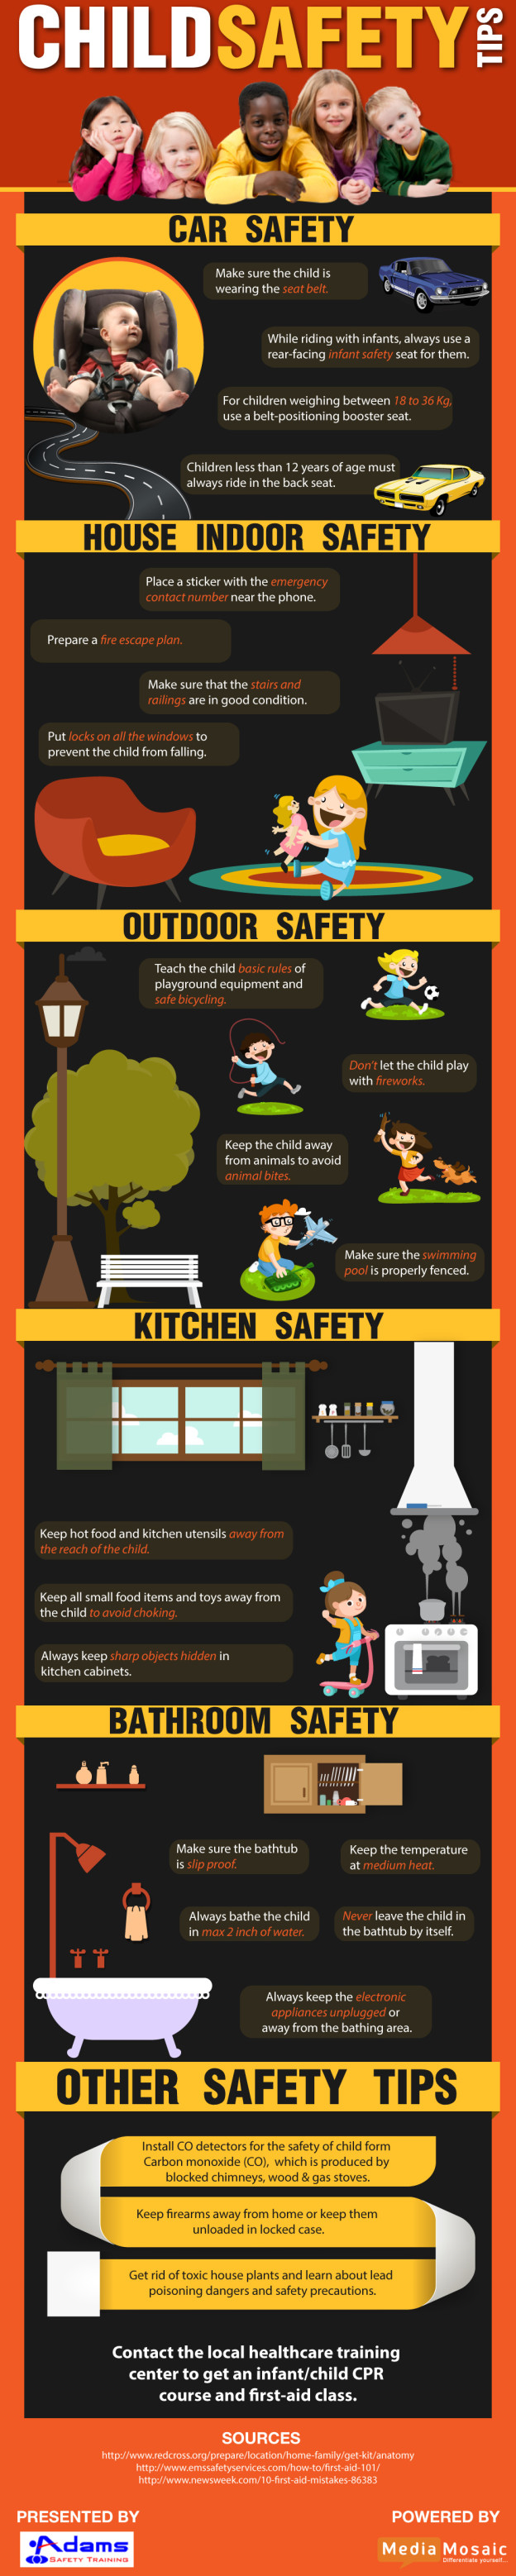 Child Safety Tips Infographic